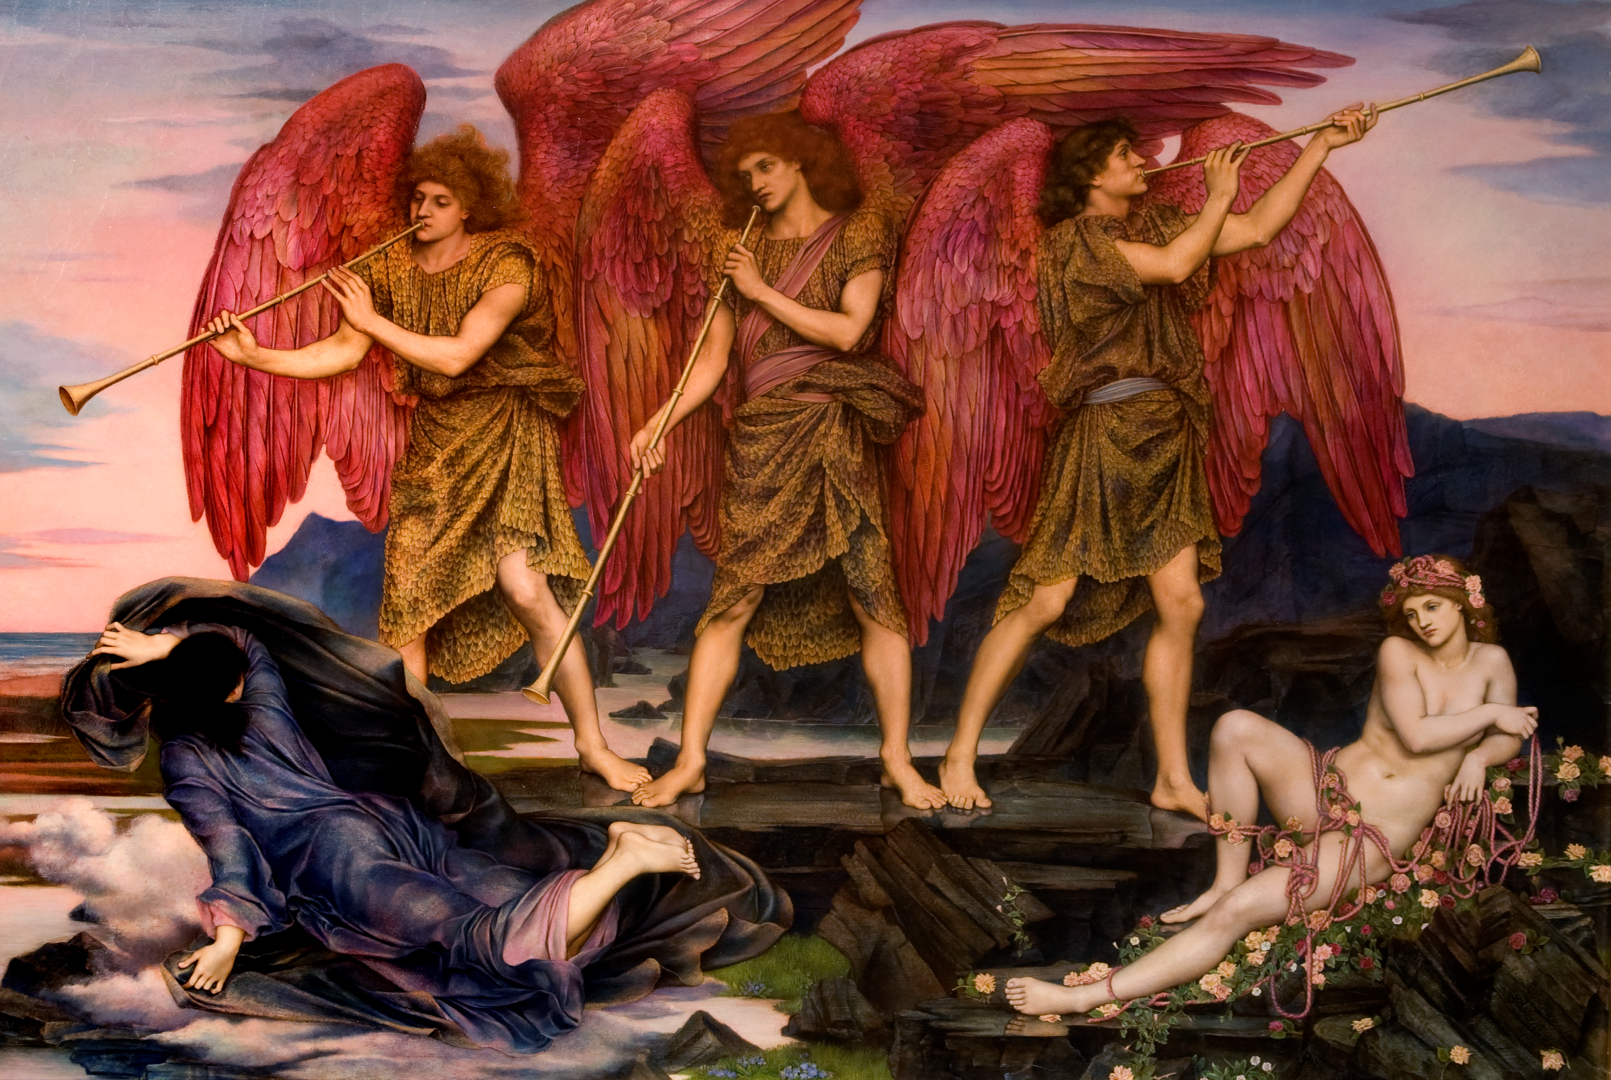 Morgan, Evelyn de - Aurora Triumphans - c. 1886.jpg